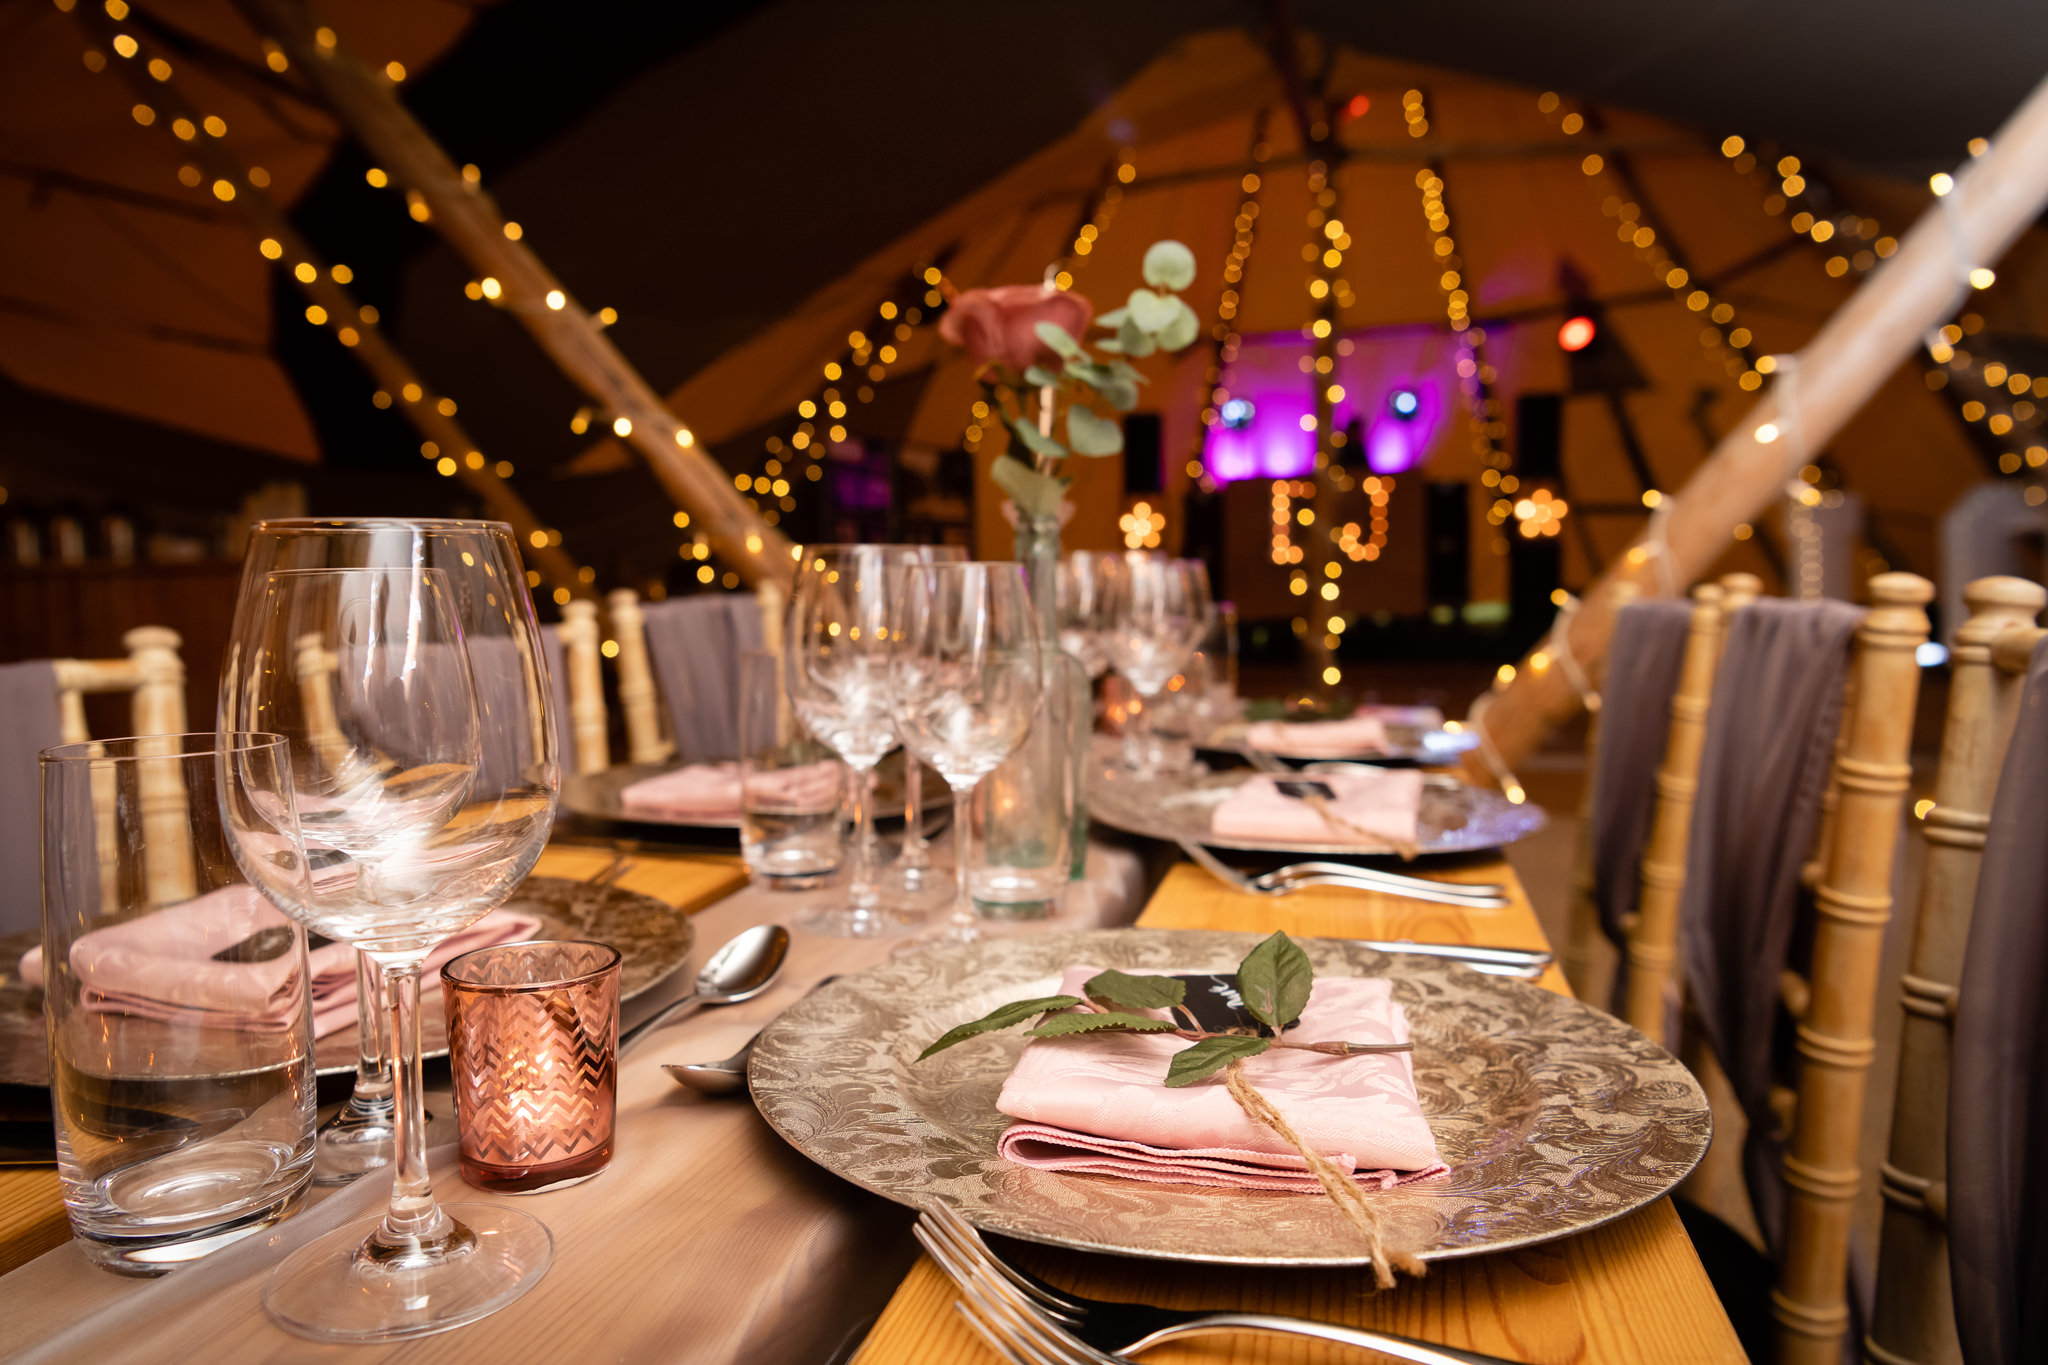 Tipis decorated for a wedding open day at Rothamsted Manor